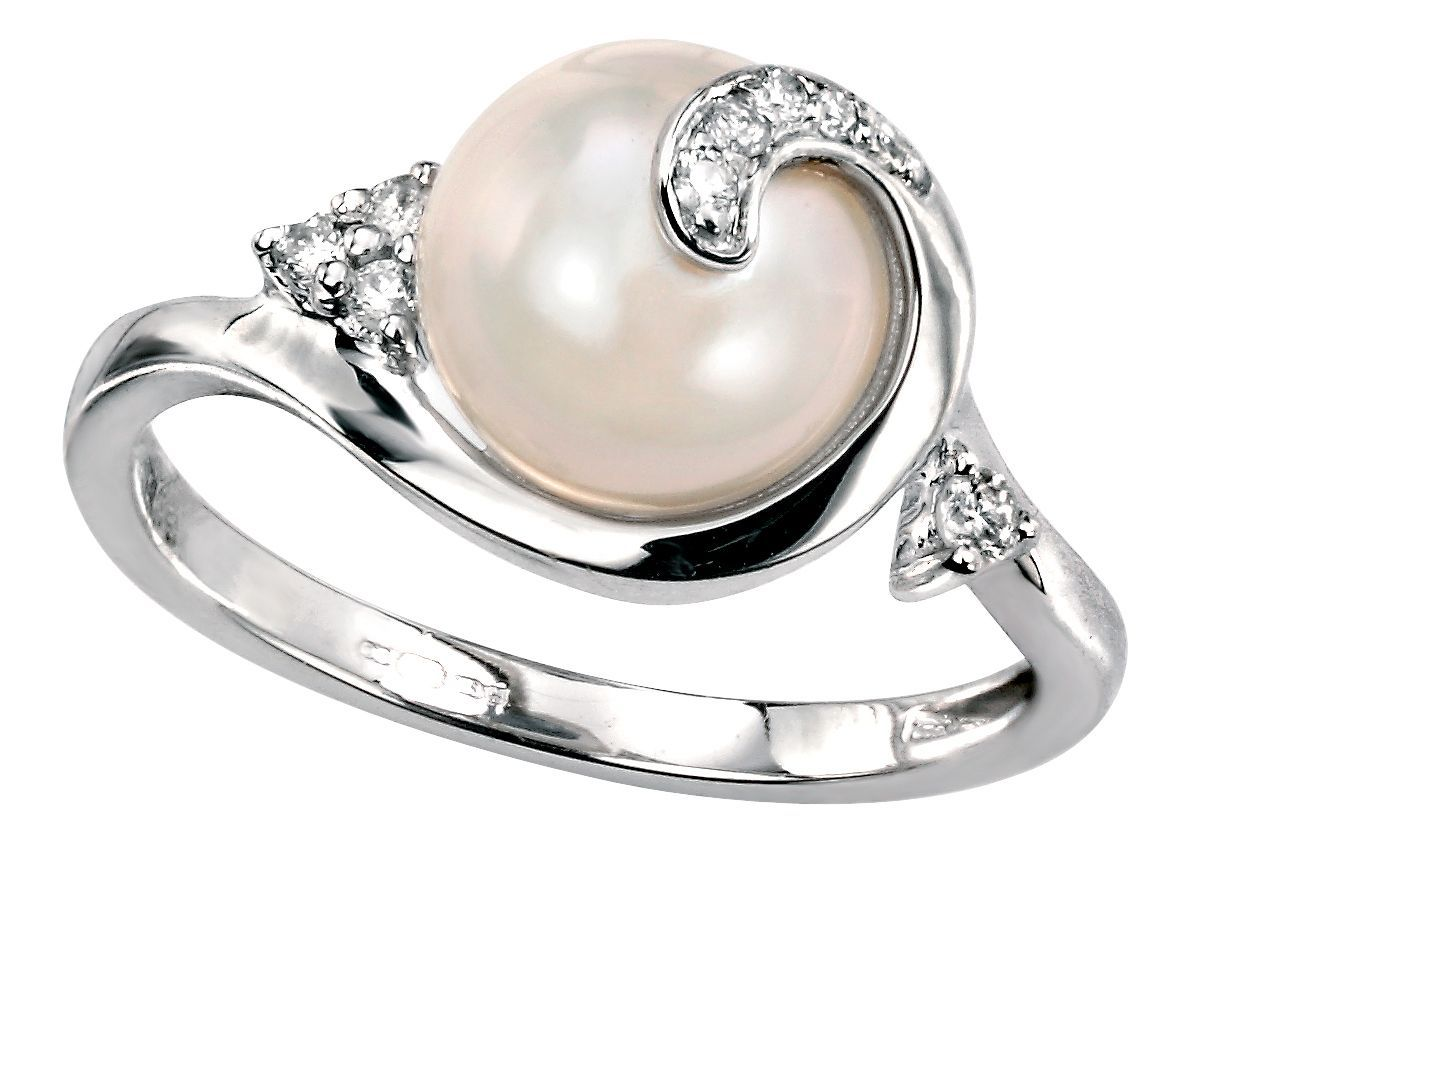 of akoya engagement romantic winning love diamond jewelry ring and one pearl rose dazzling award bashert featuring handcrafted gold design in infinity kind a unique rings products